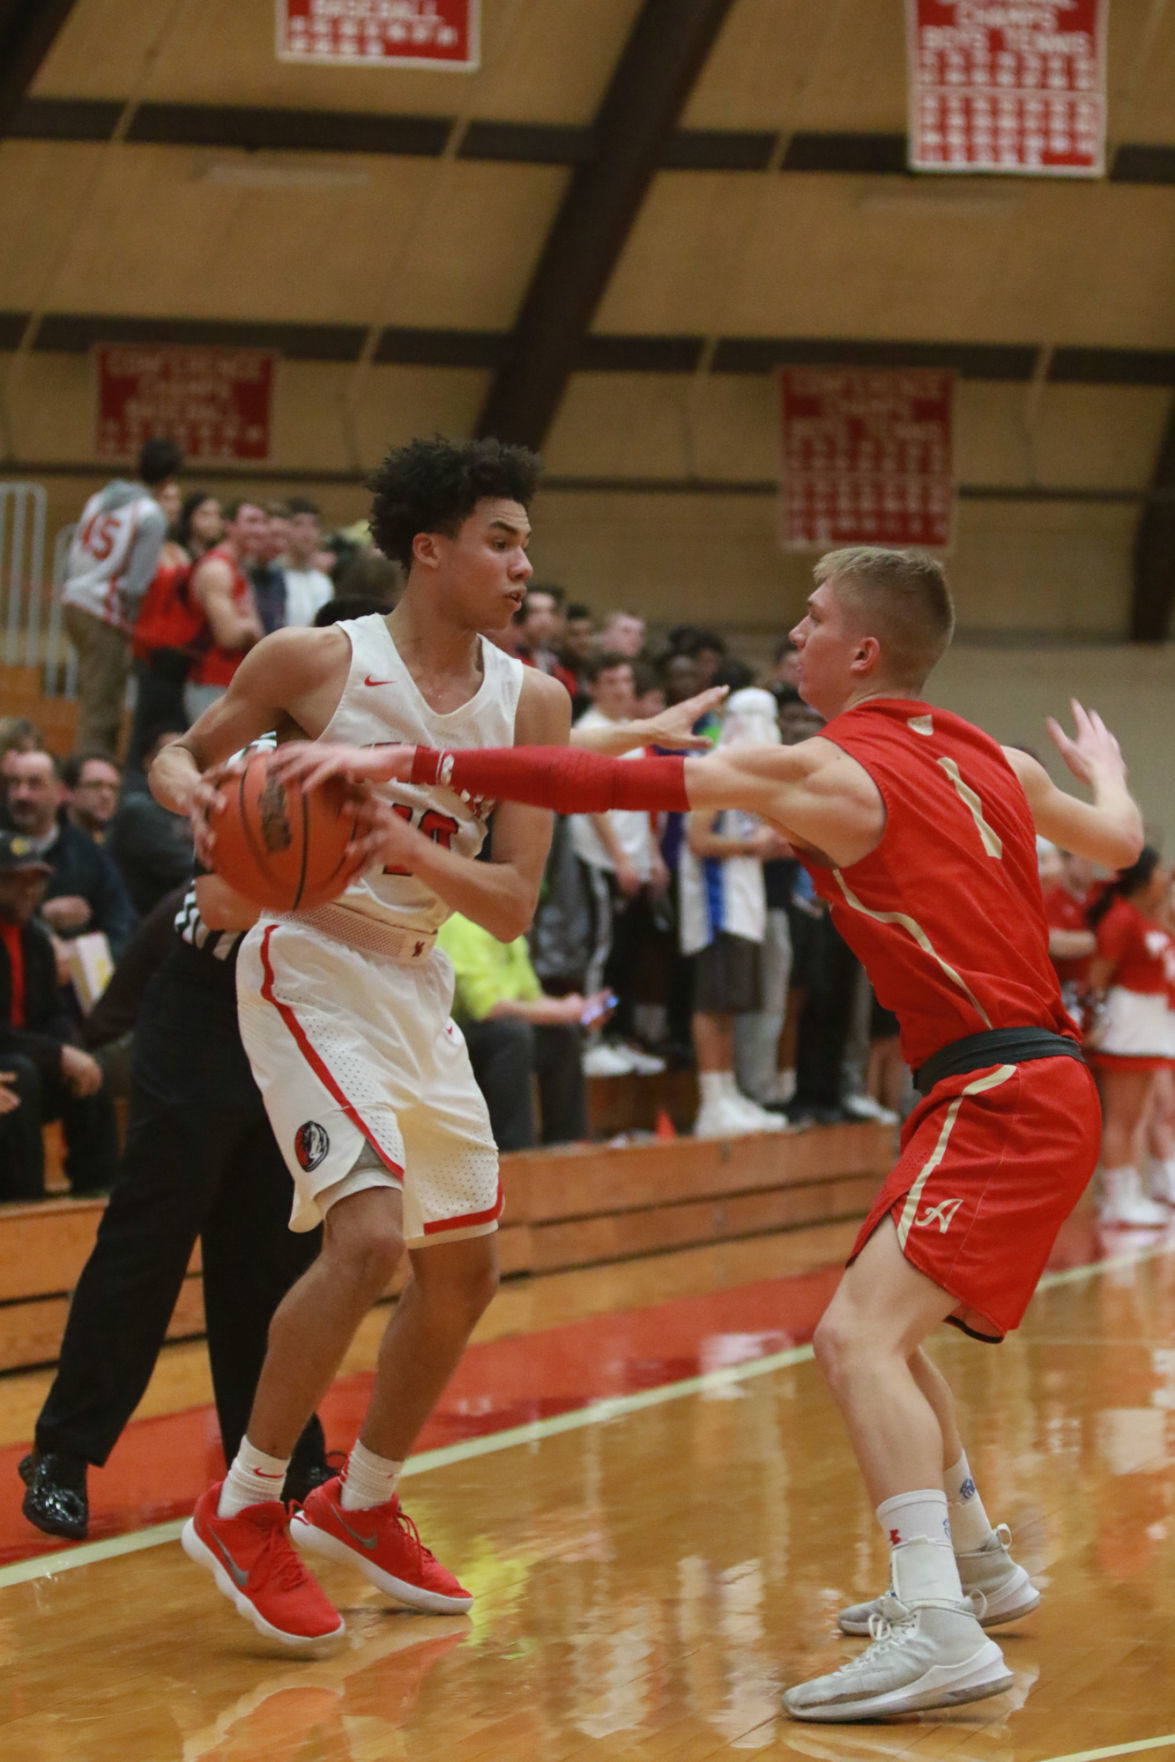 Munster gets tough draw in wide open Sectional 2